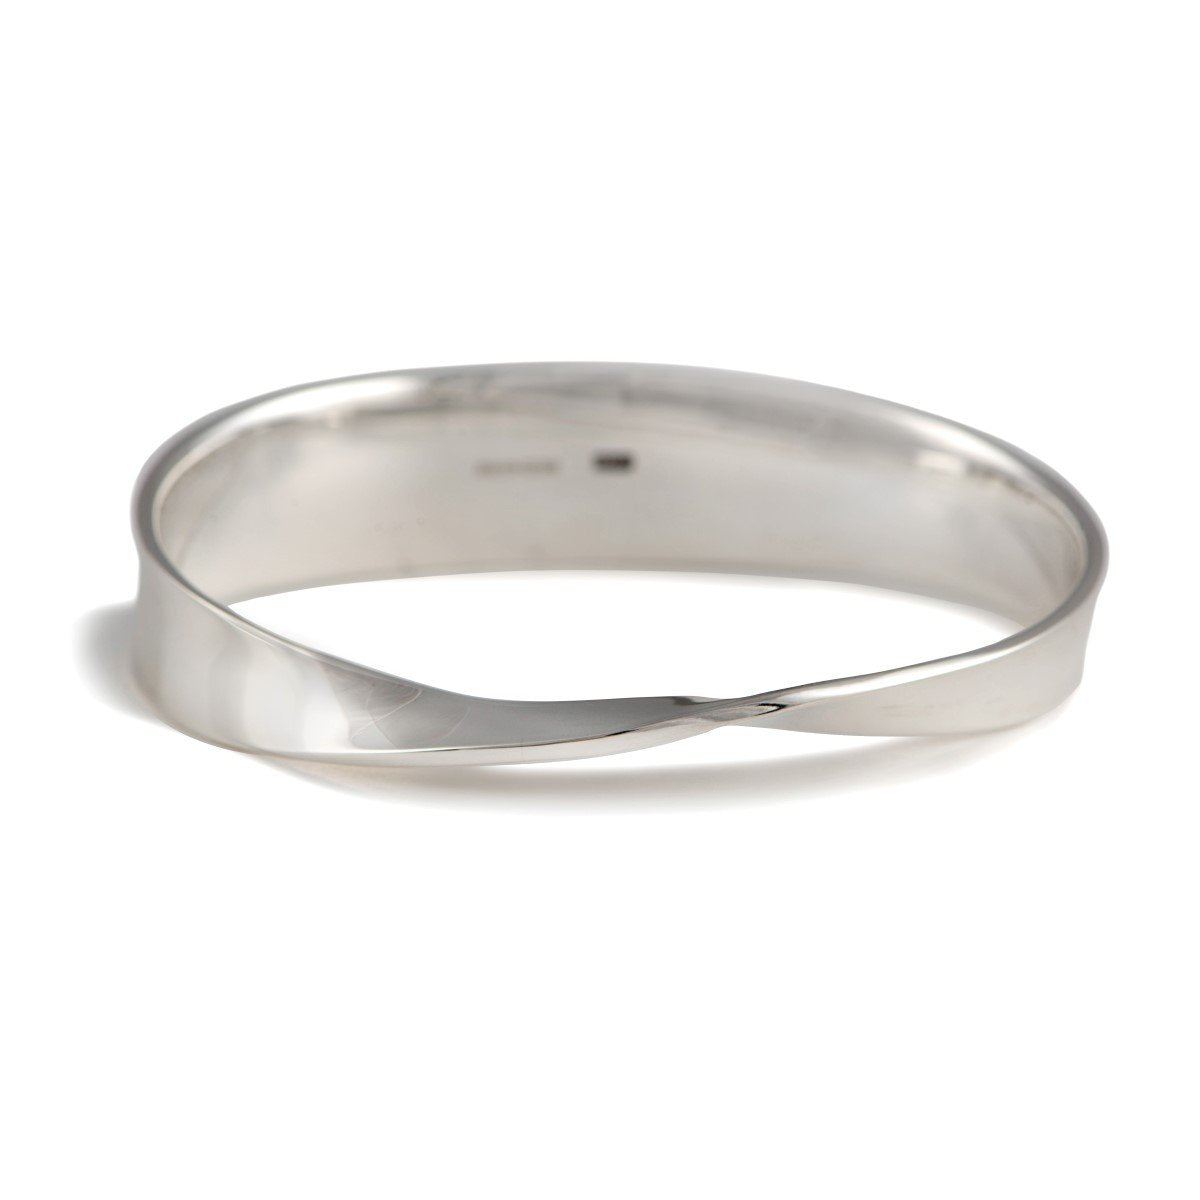 Heavy Sterling Silver Bangle With a Twist